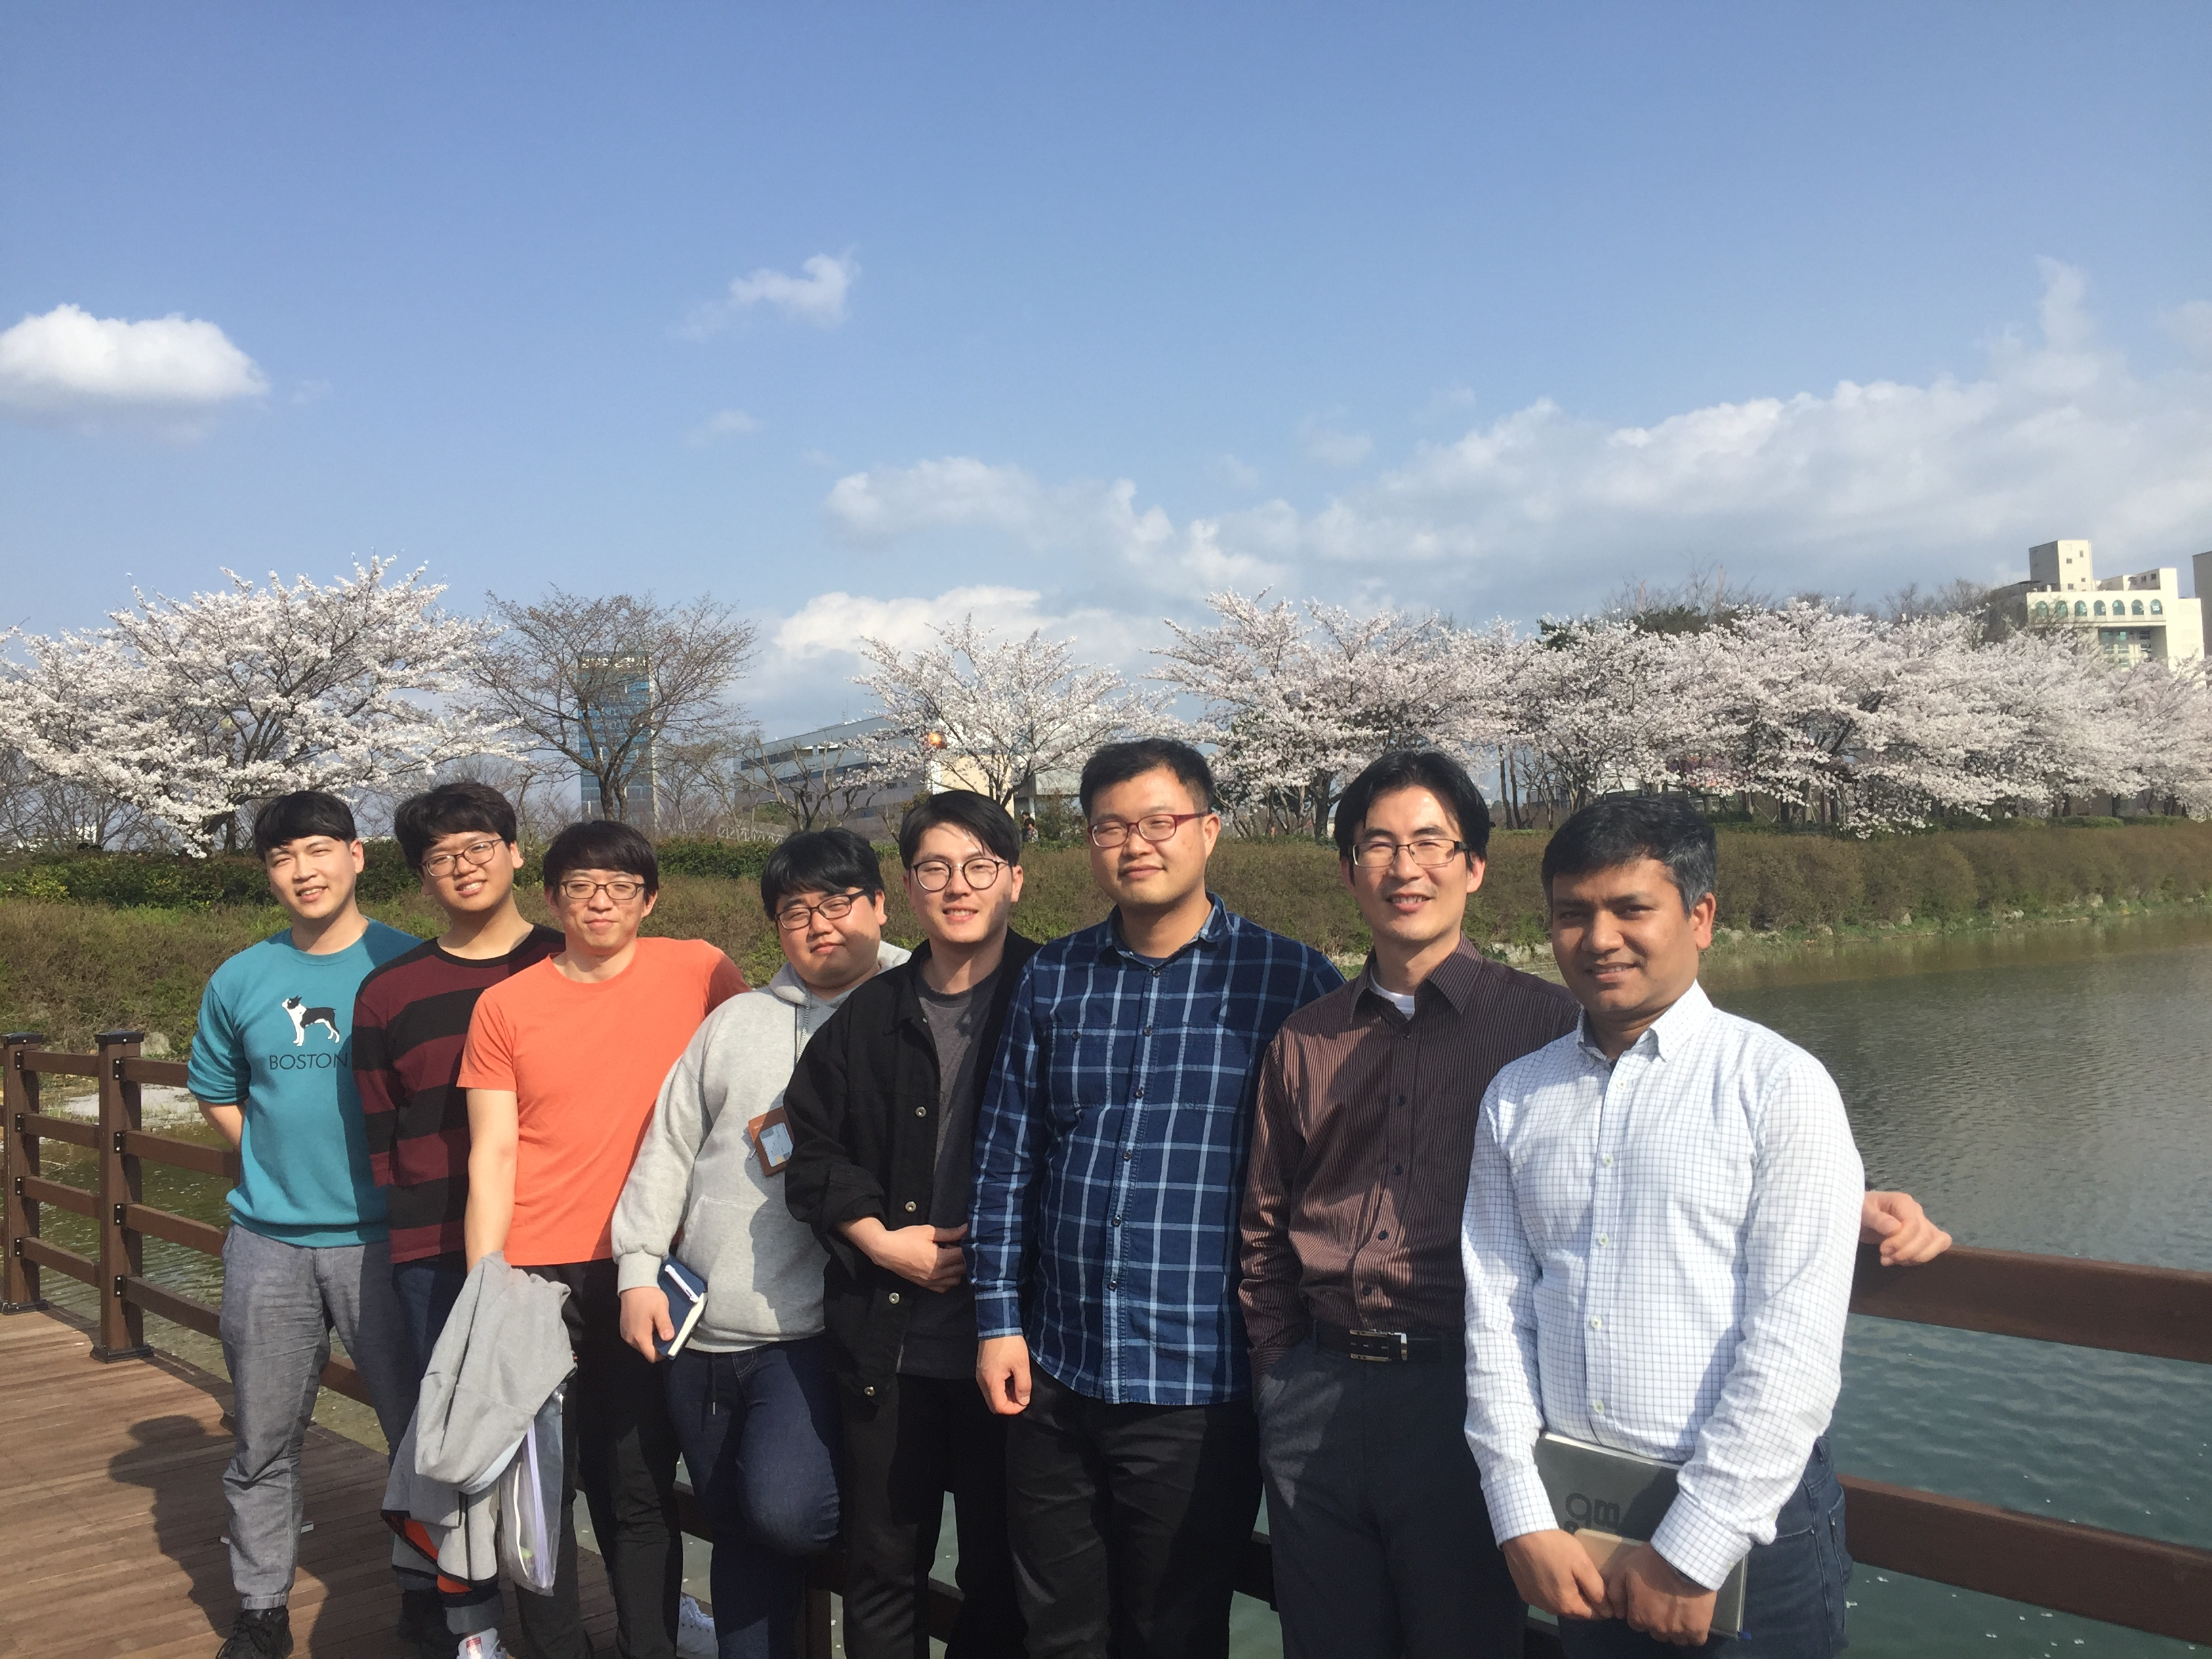 LAB Picnic to see Cherry Blossom (Ssangam Park) 이미지